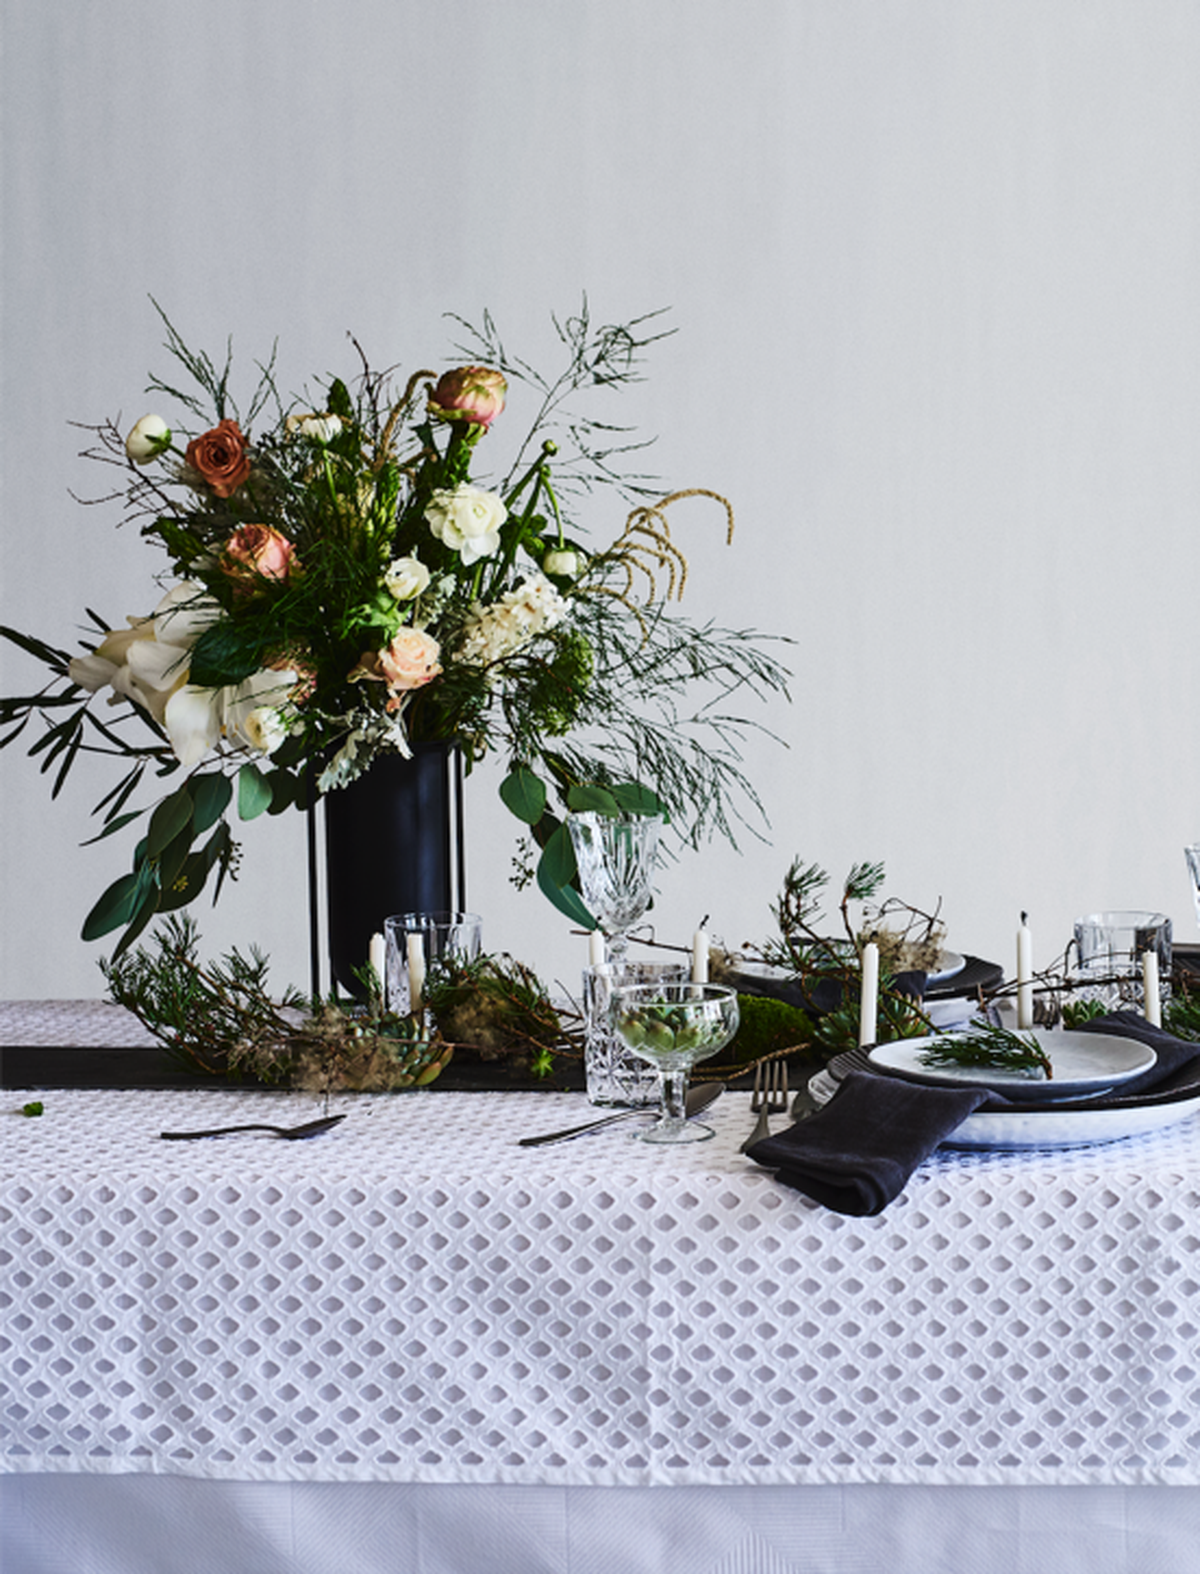 Table setting in warm Nordic style created by Pernille Albers and Nick Degn Fotografi for Mad&Bolig